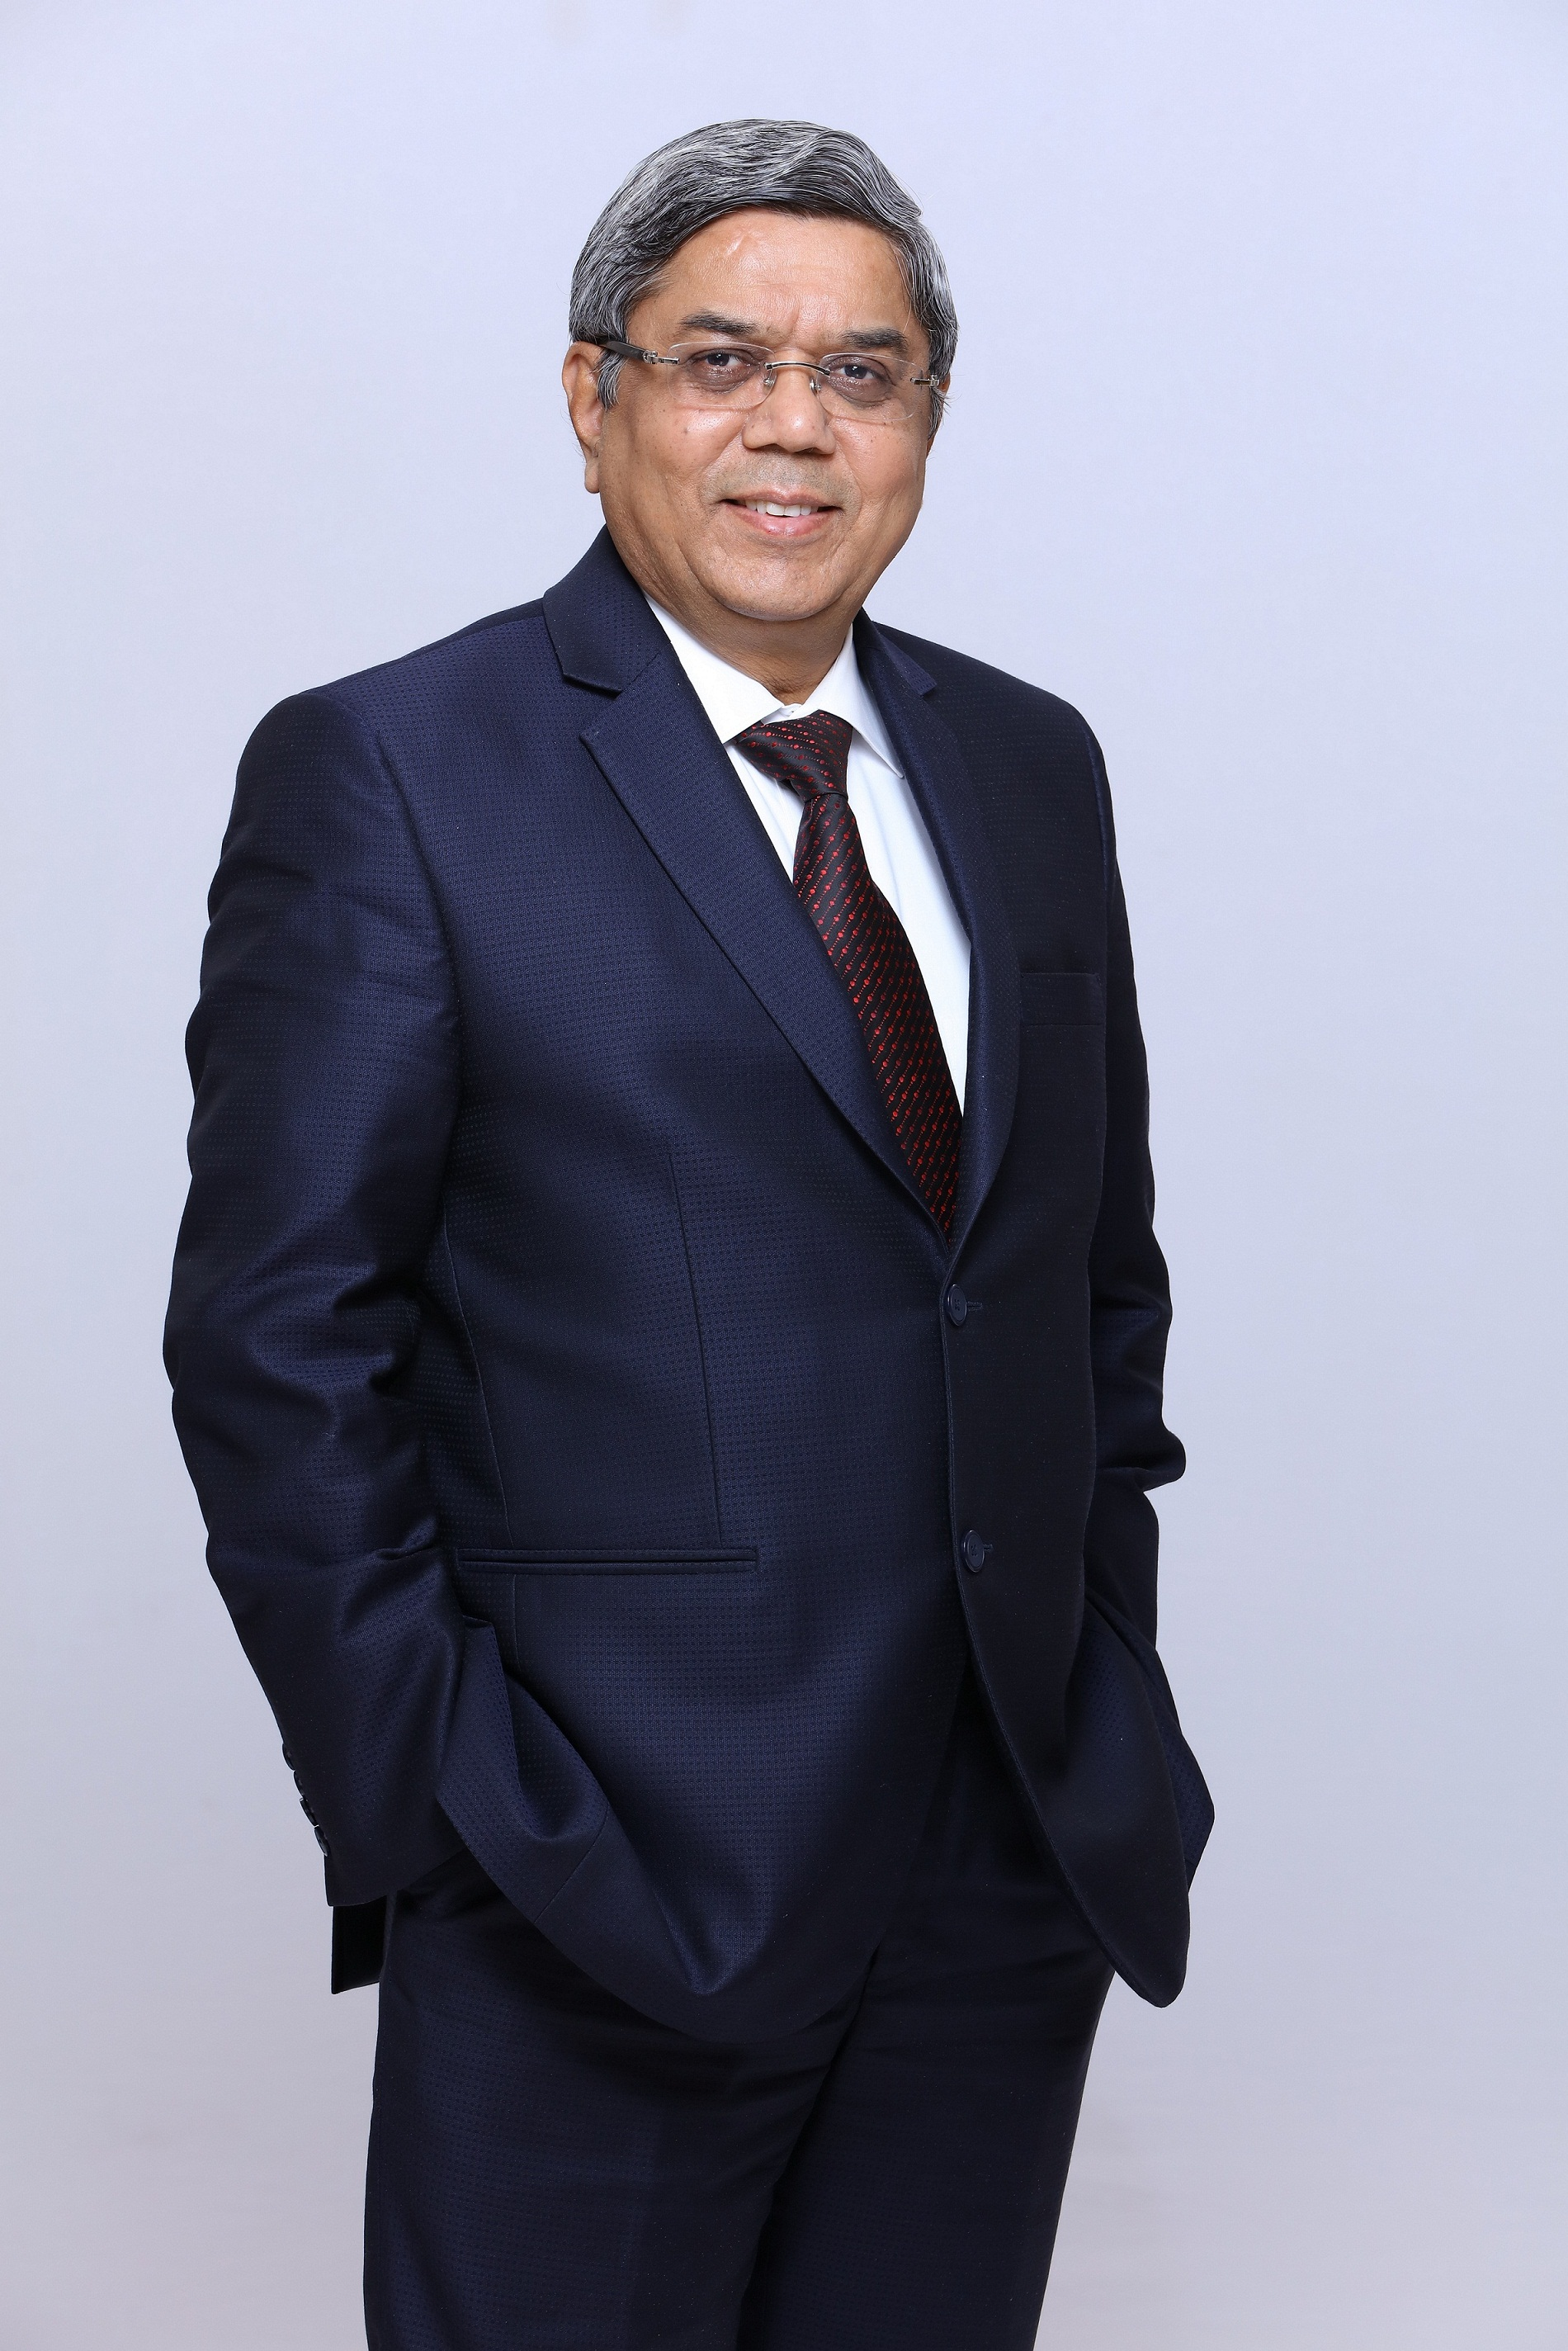 Budget Reaction – Mr Tulsi Tanti, Founder, Chairman and Managing Director, Suzlon Group